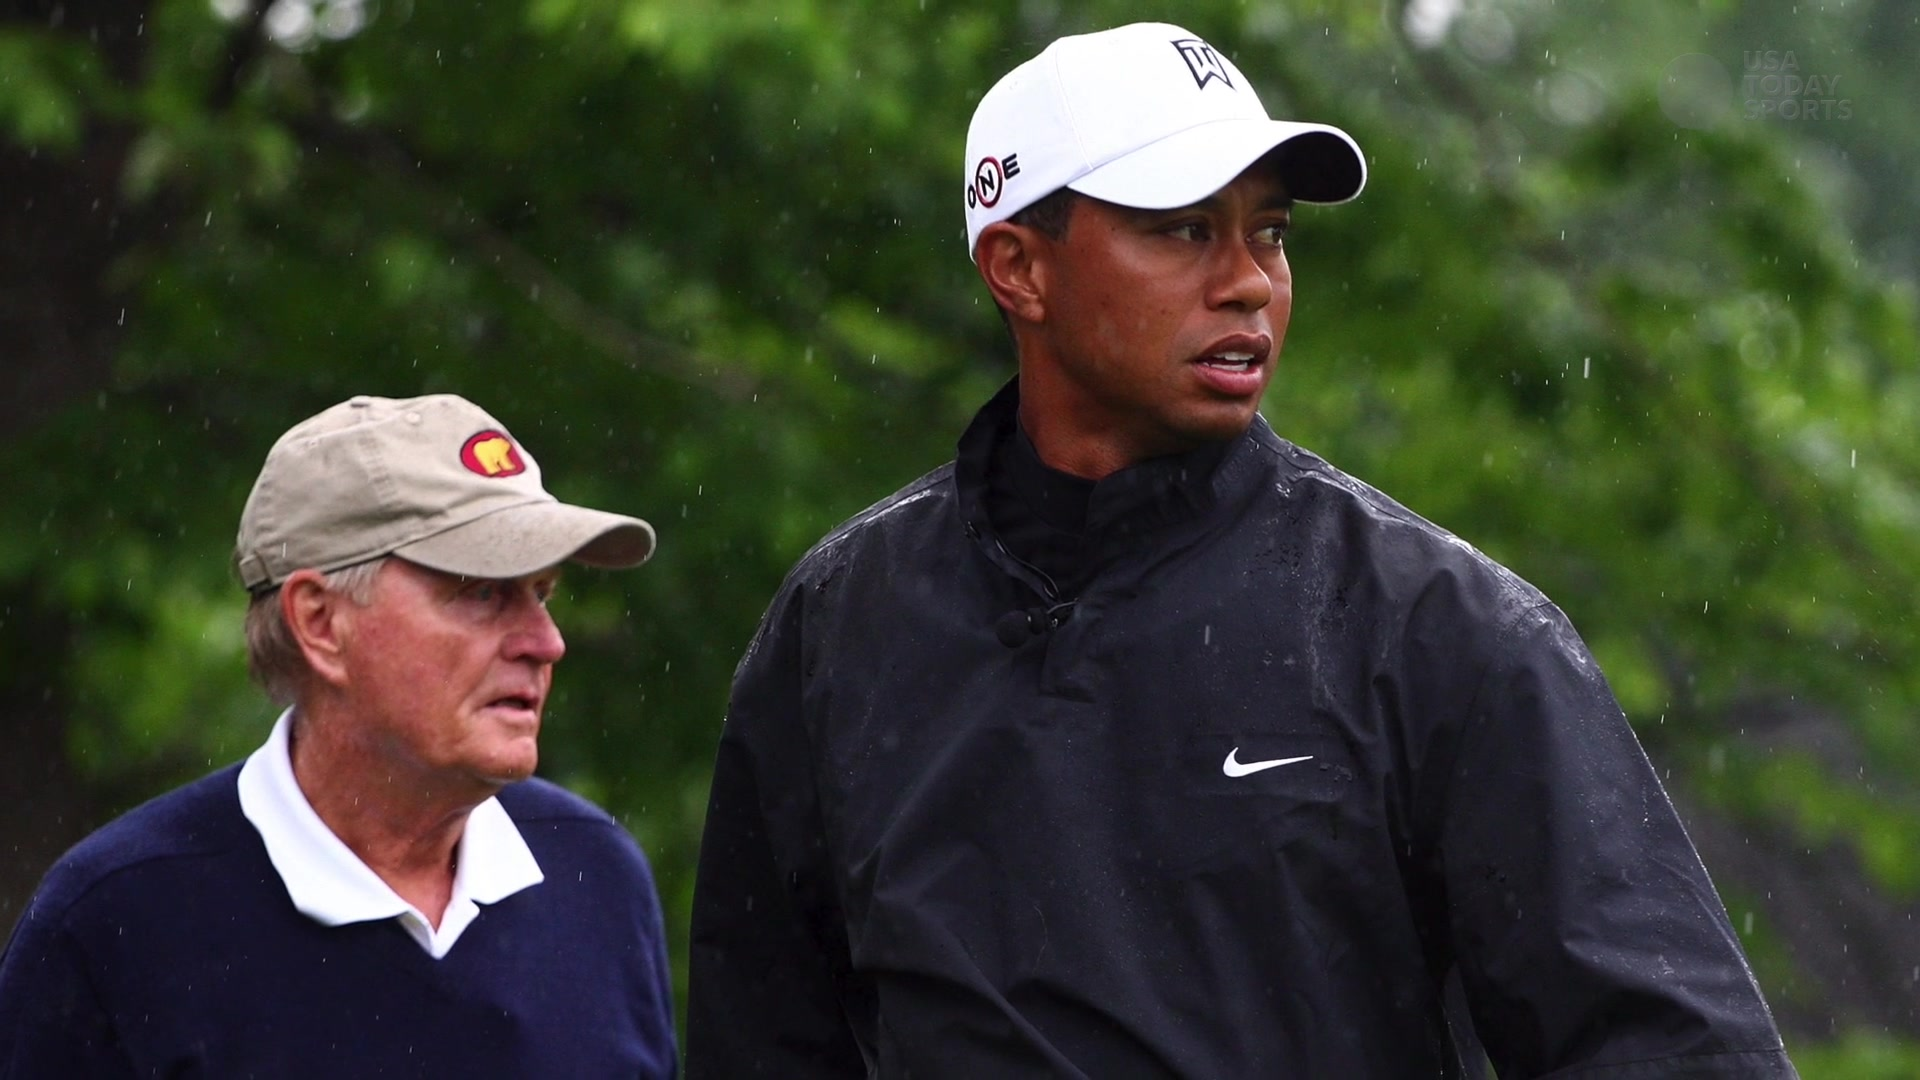 Tiger 'Very Healthy' According to Nicklaus